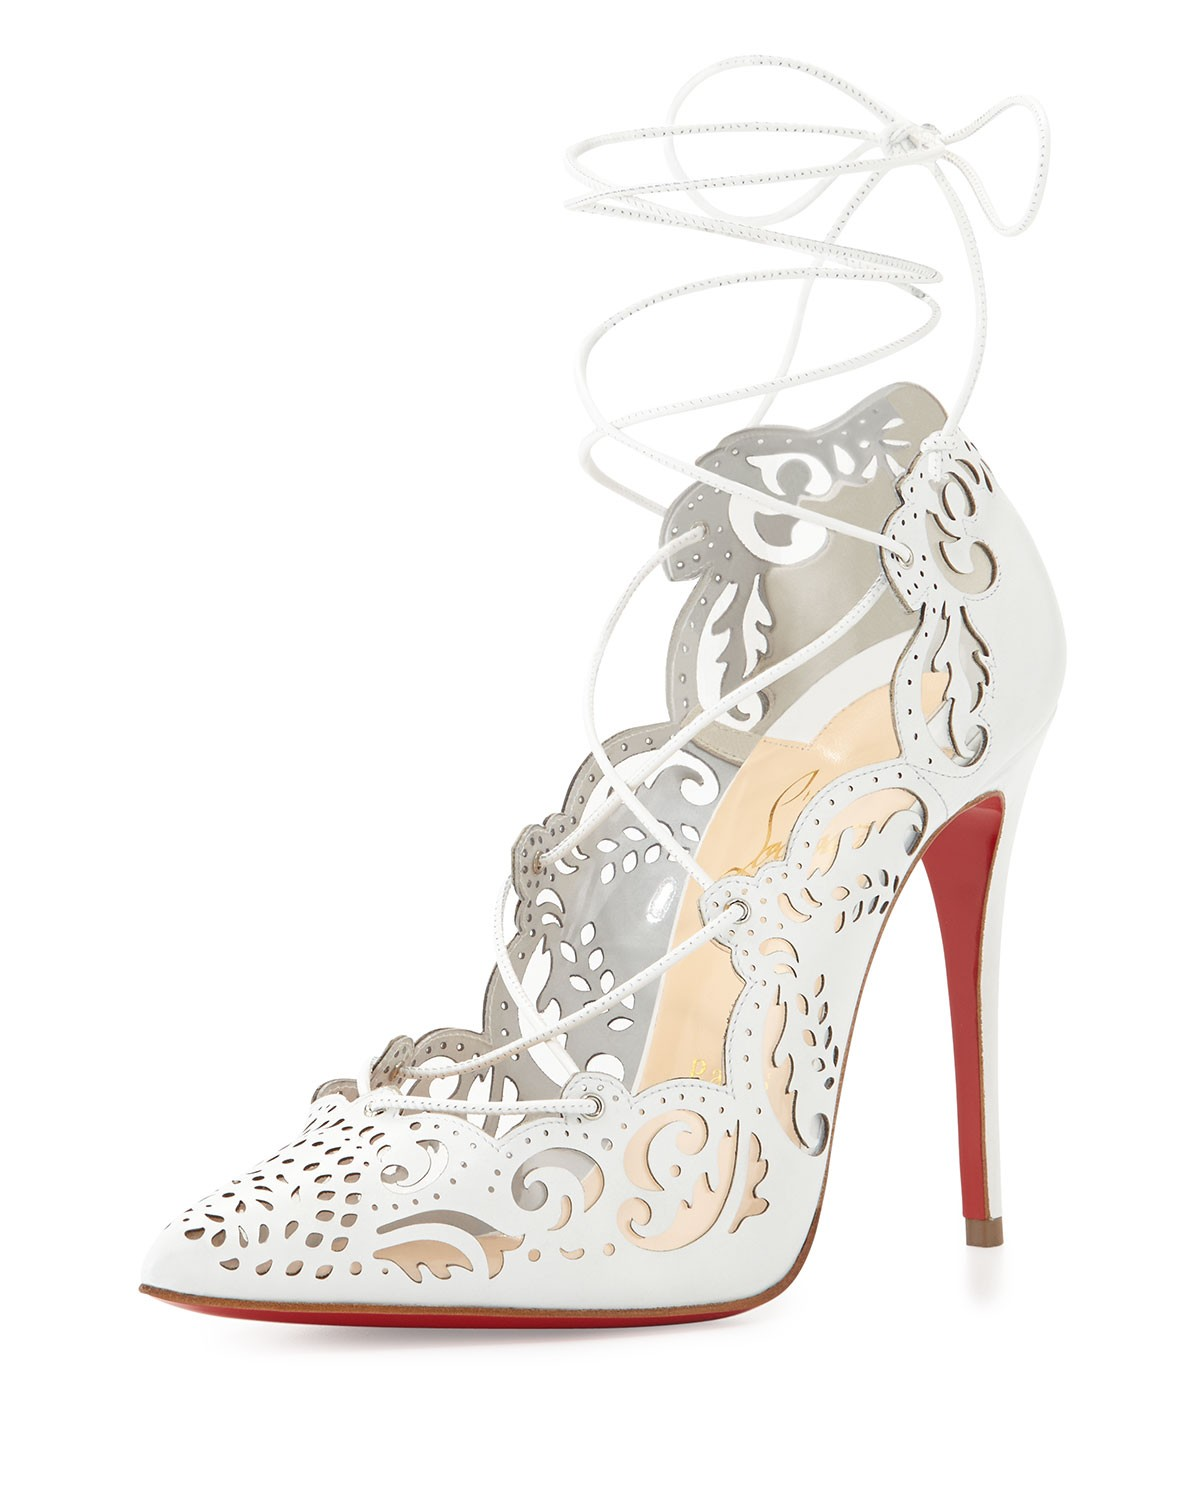 Impera Lace-Up Red Sole Pump, White - Christian Louboutin - White (35.0B/5.0B)